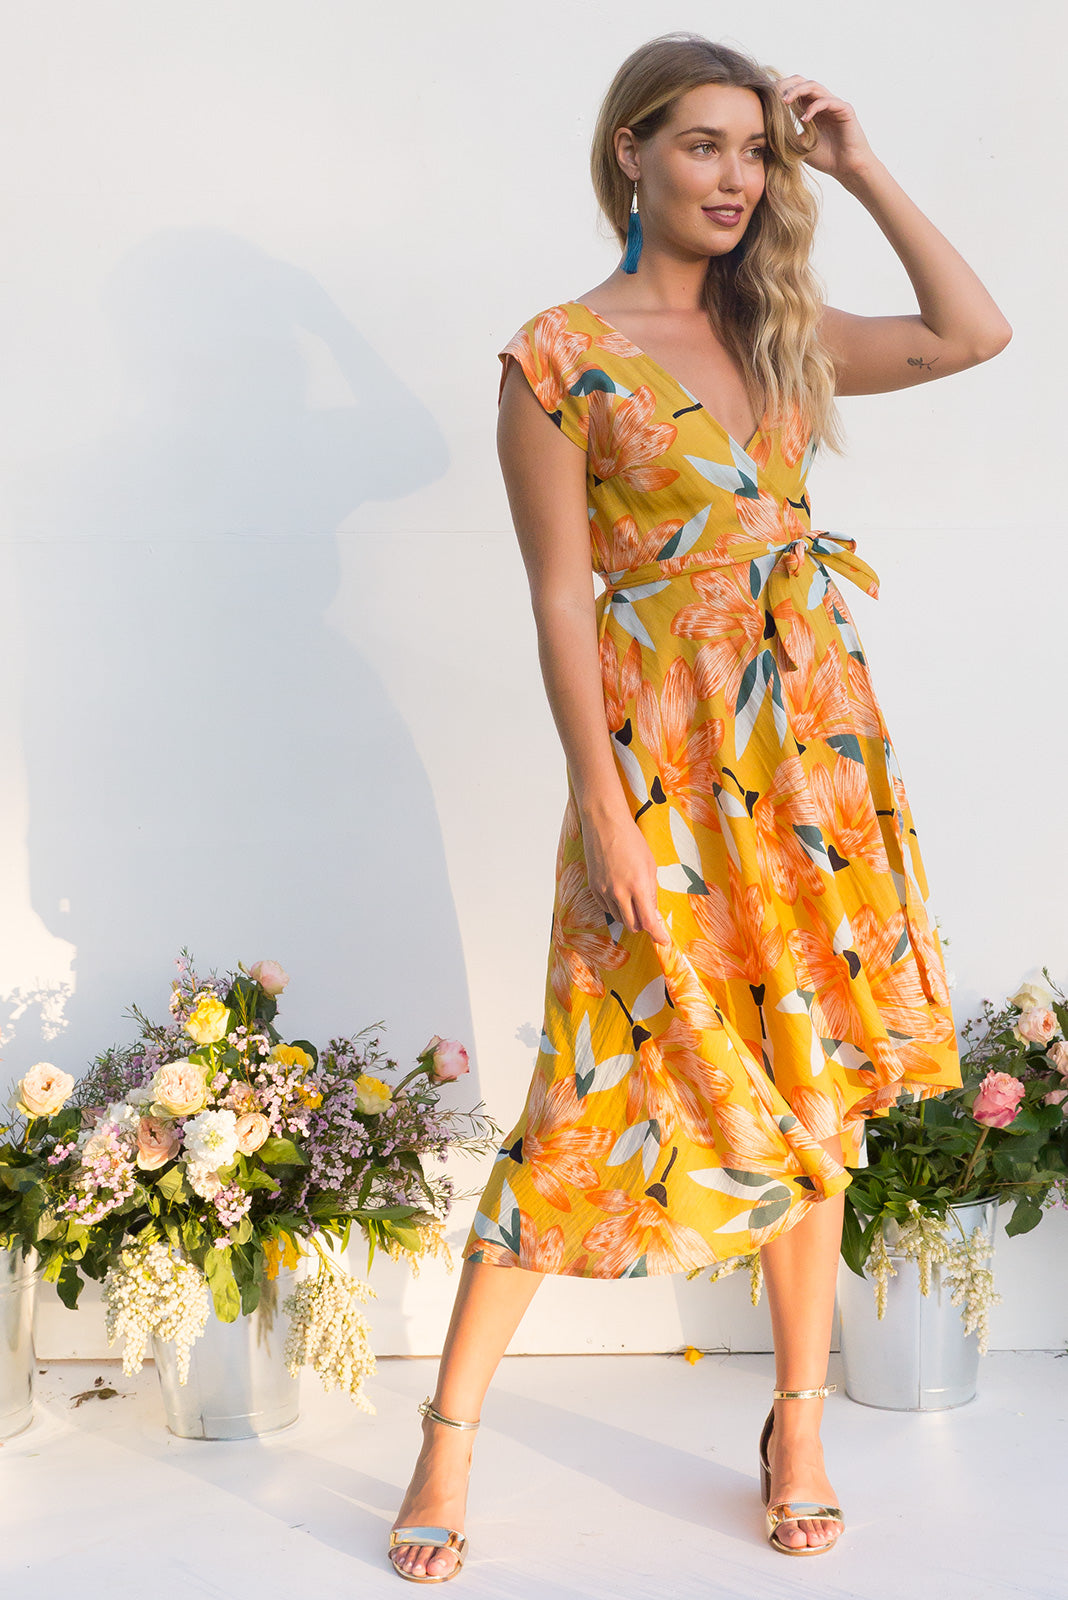 Fanciful Golden Lilly Wrap Dress featuring a fitted cross over bust and flirty skirt in a large vintage floral print print